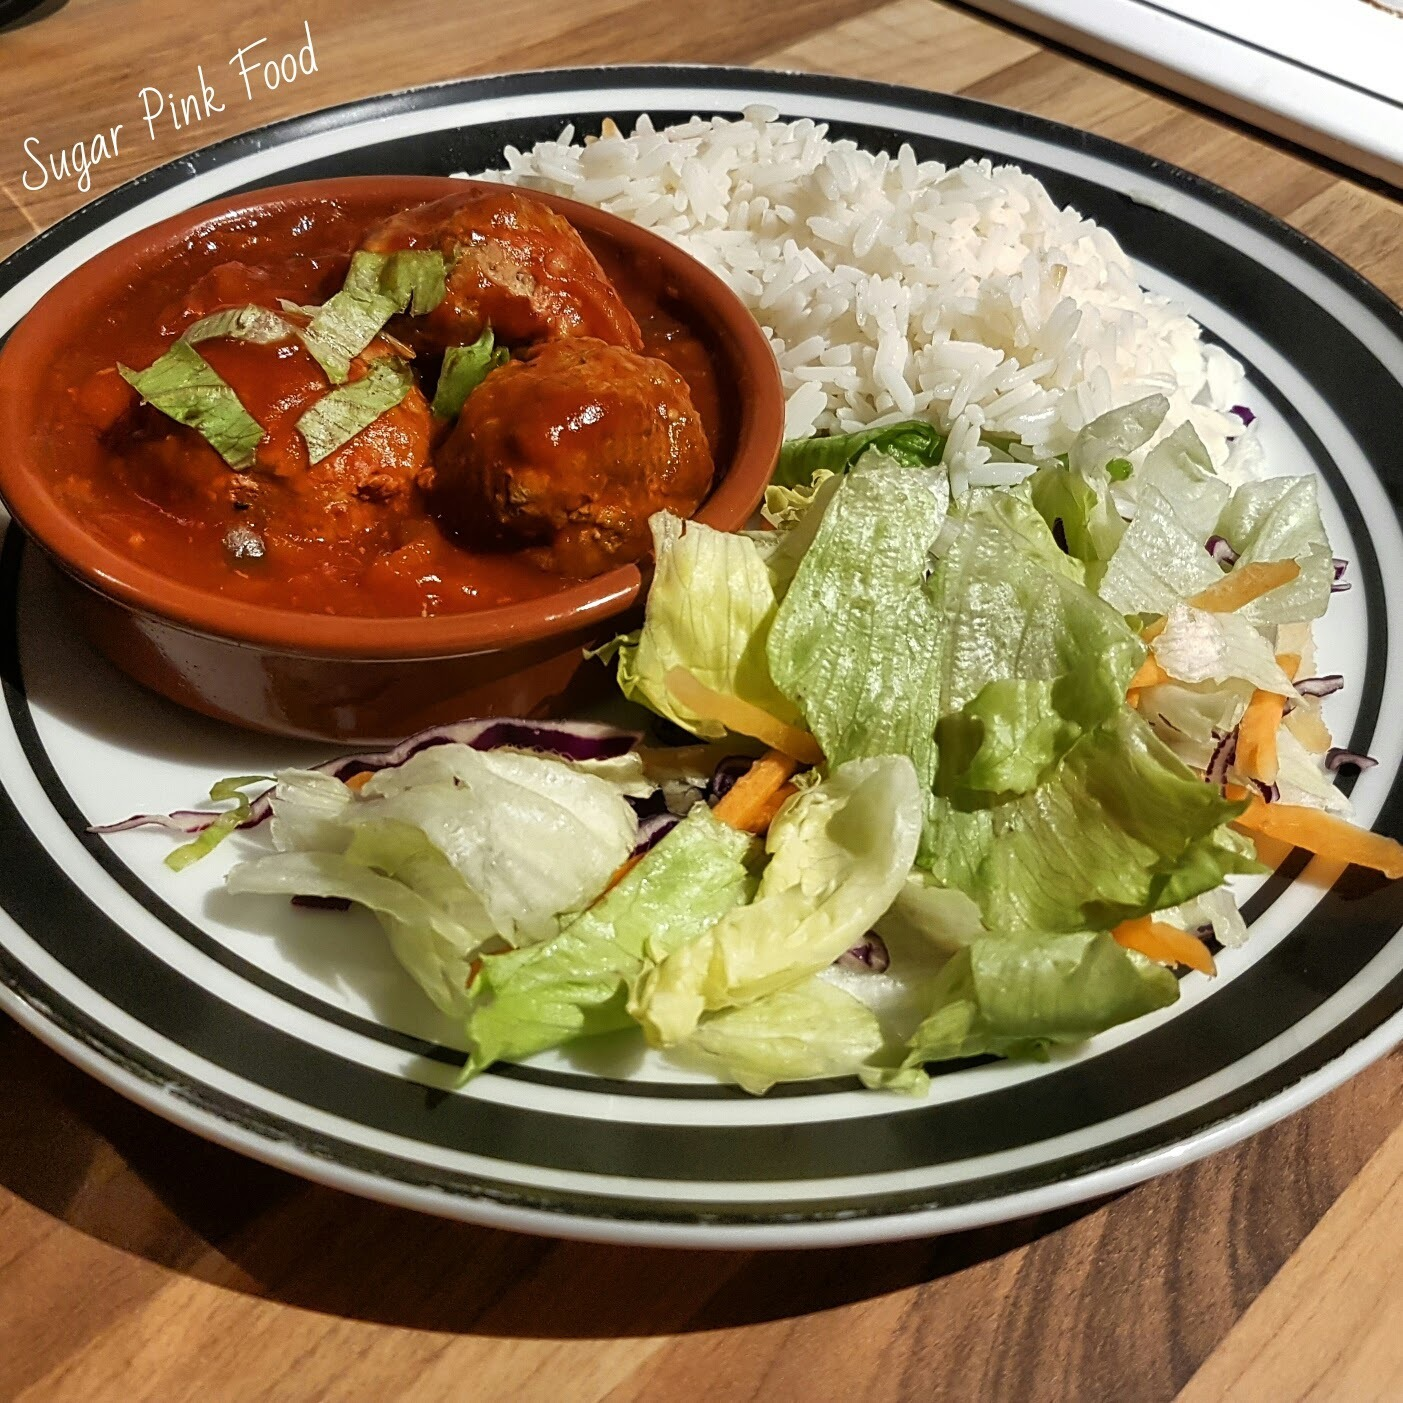 Slimming World Friendly Recipe: Slow Cooker Beef Meatballs in Tomato & Maple Sauce